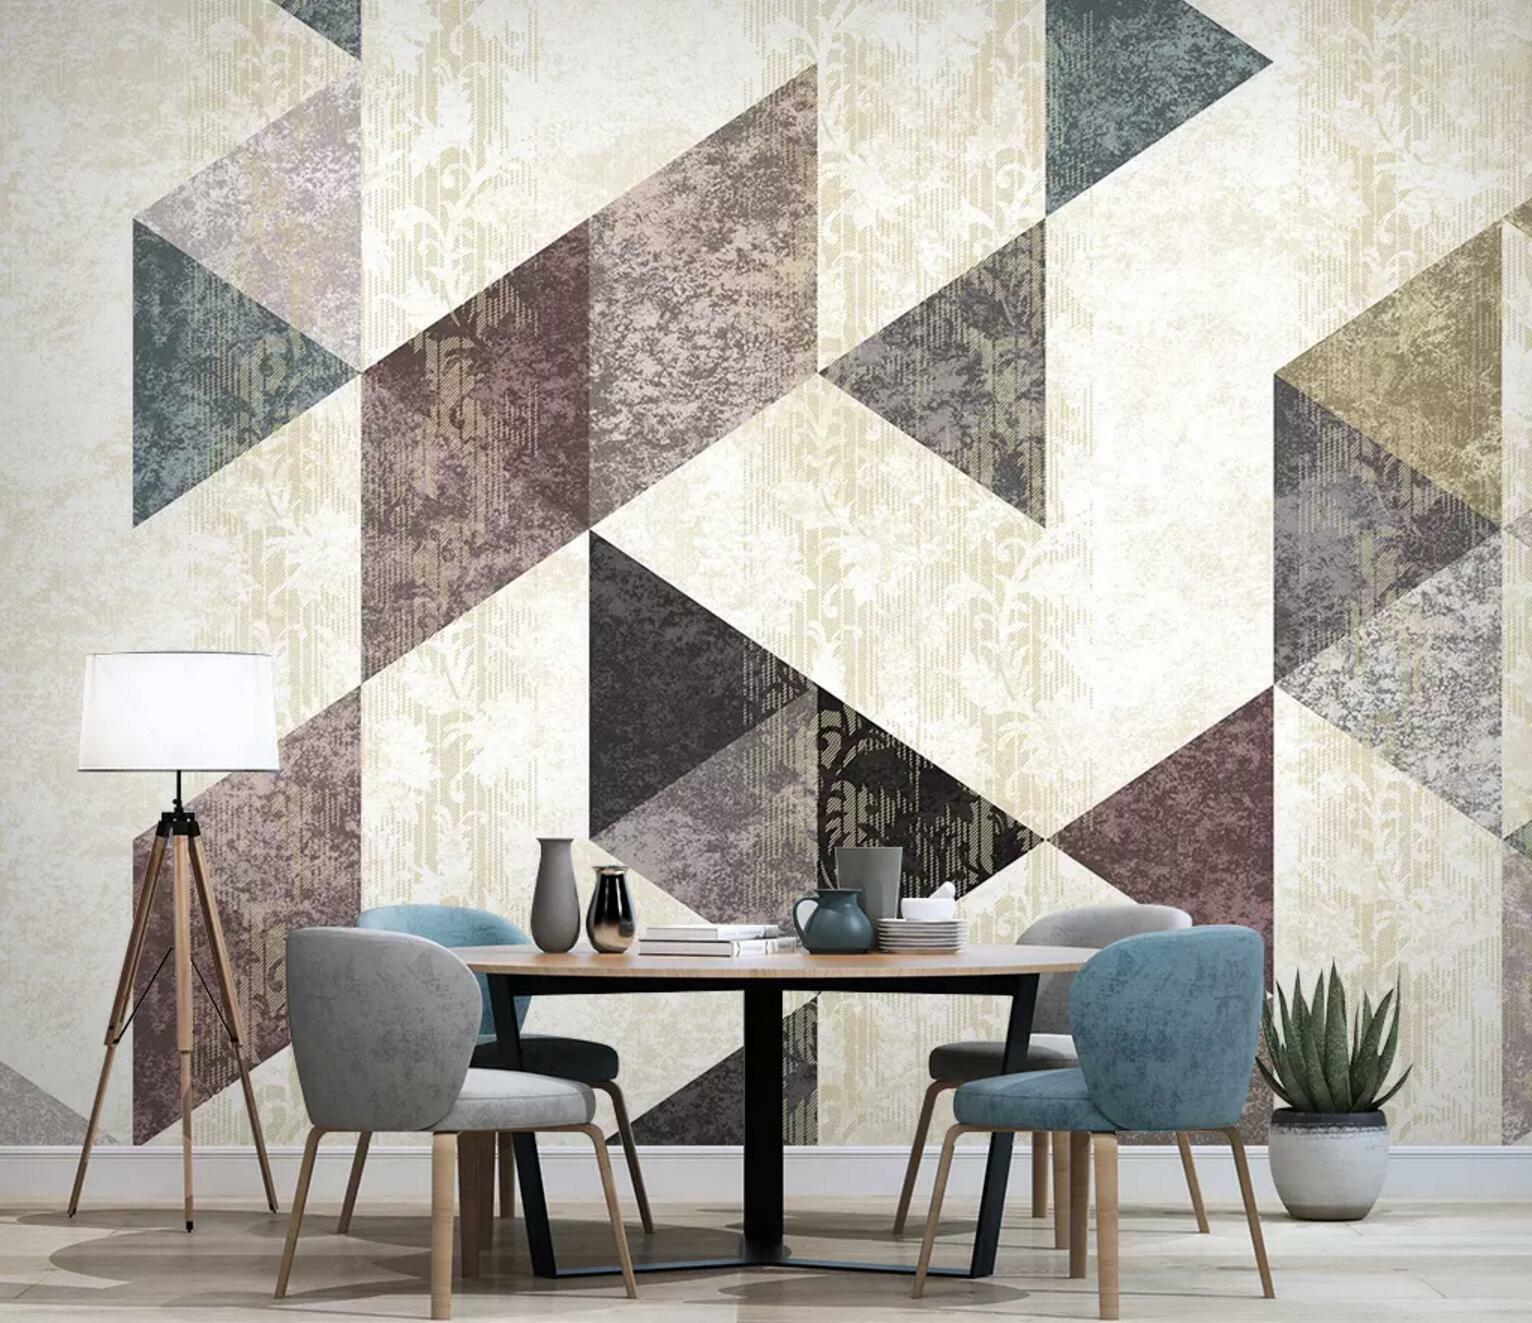 3D Geometric Patterns 12 Wall Paper Exclusive MXY Wallpaper Mural Decal Indoor